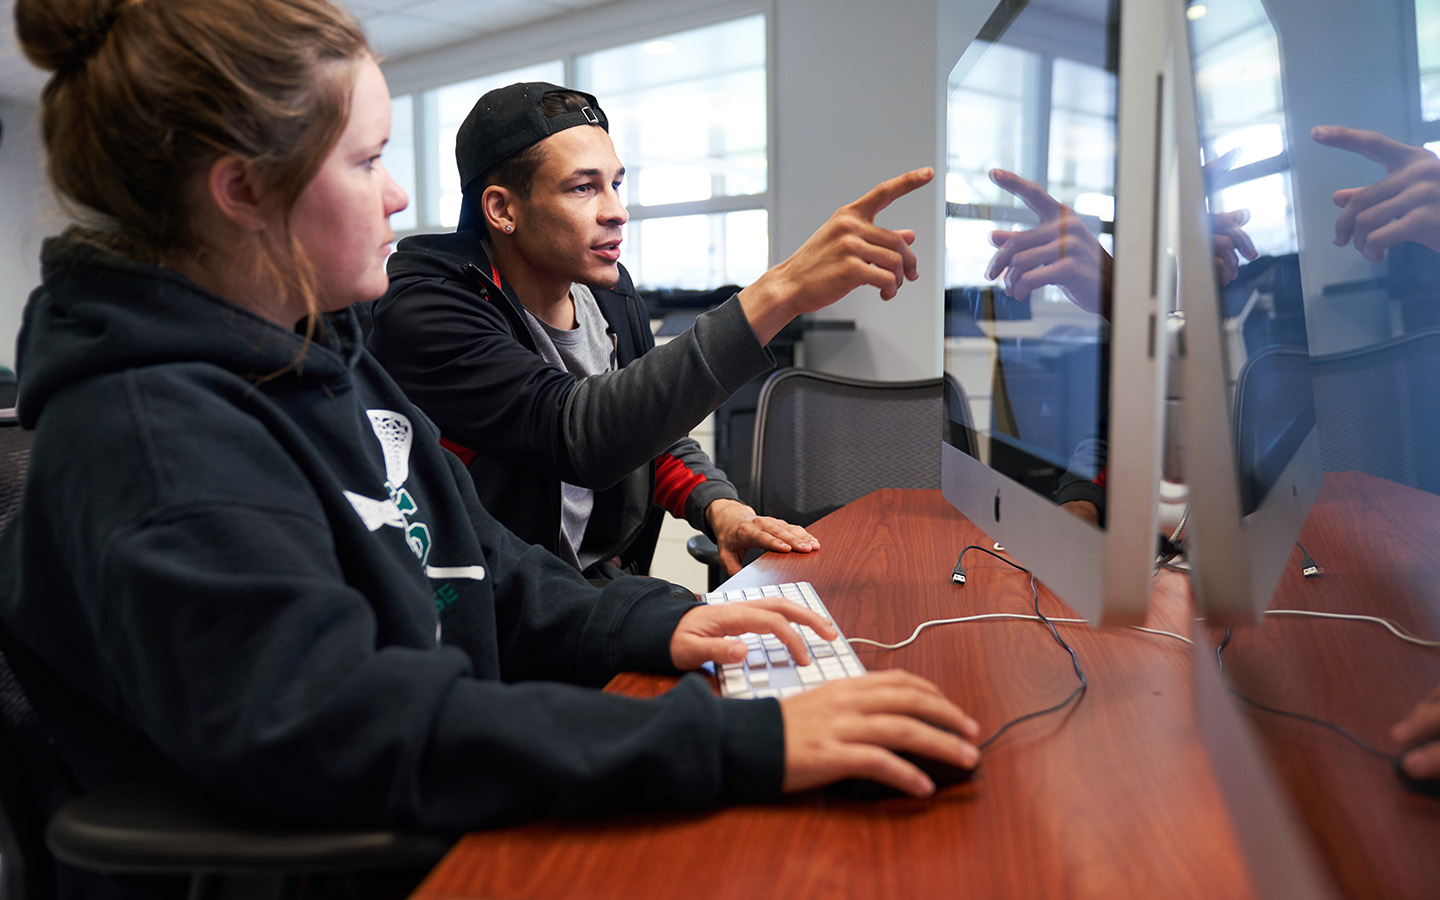 Two HNU students working on a computer together